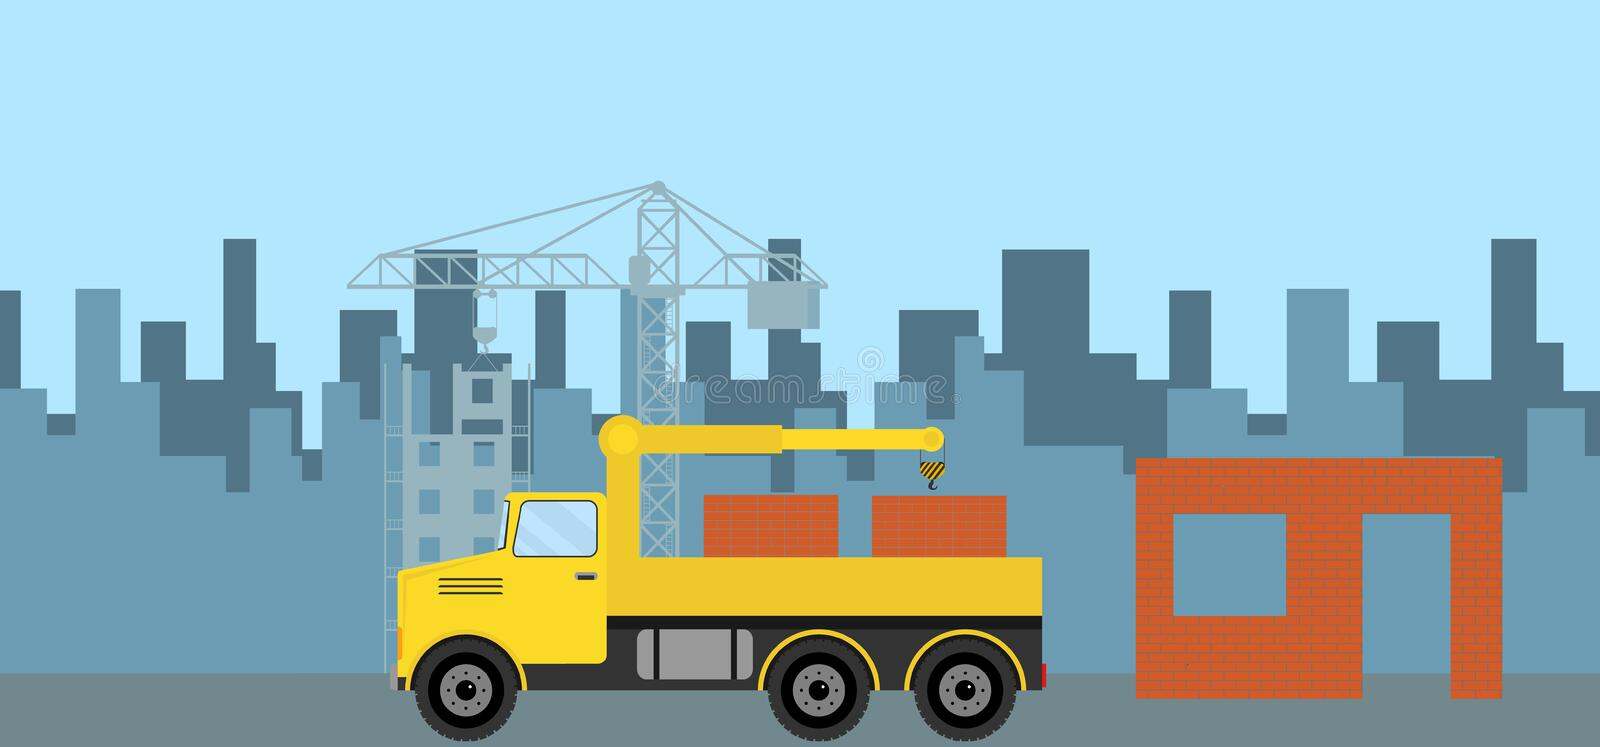 The truck brought a brick to the construction site. Truck with a brick. Flat design, illustration royalty free illustration